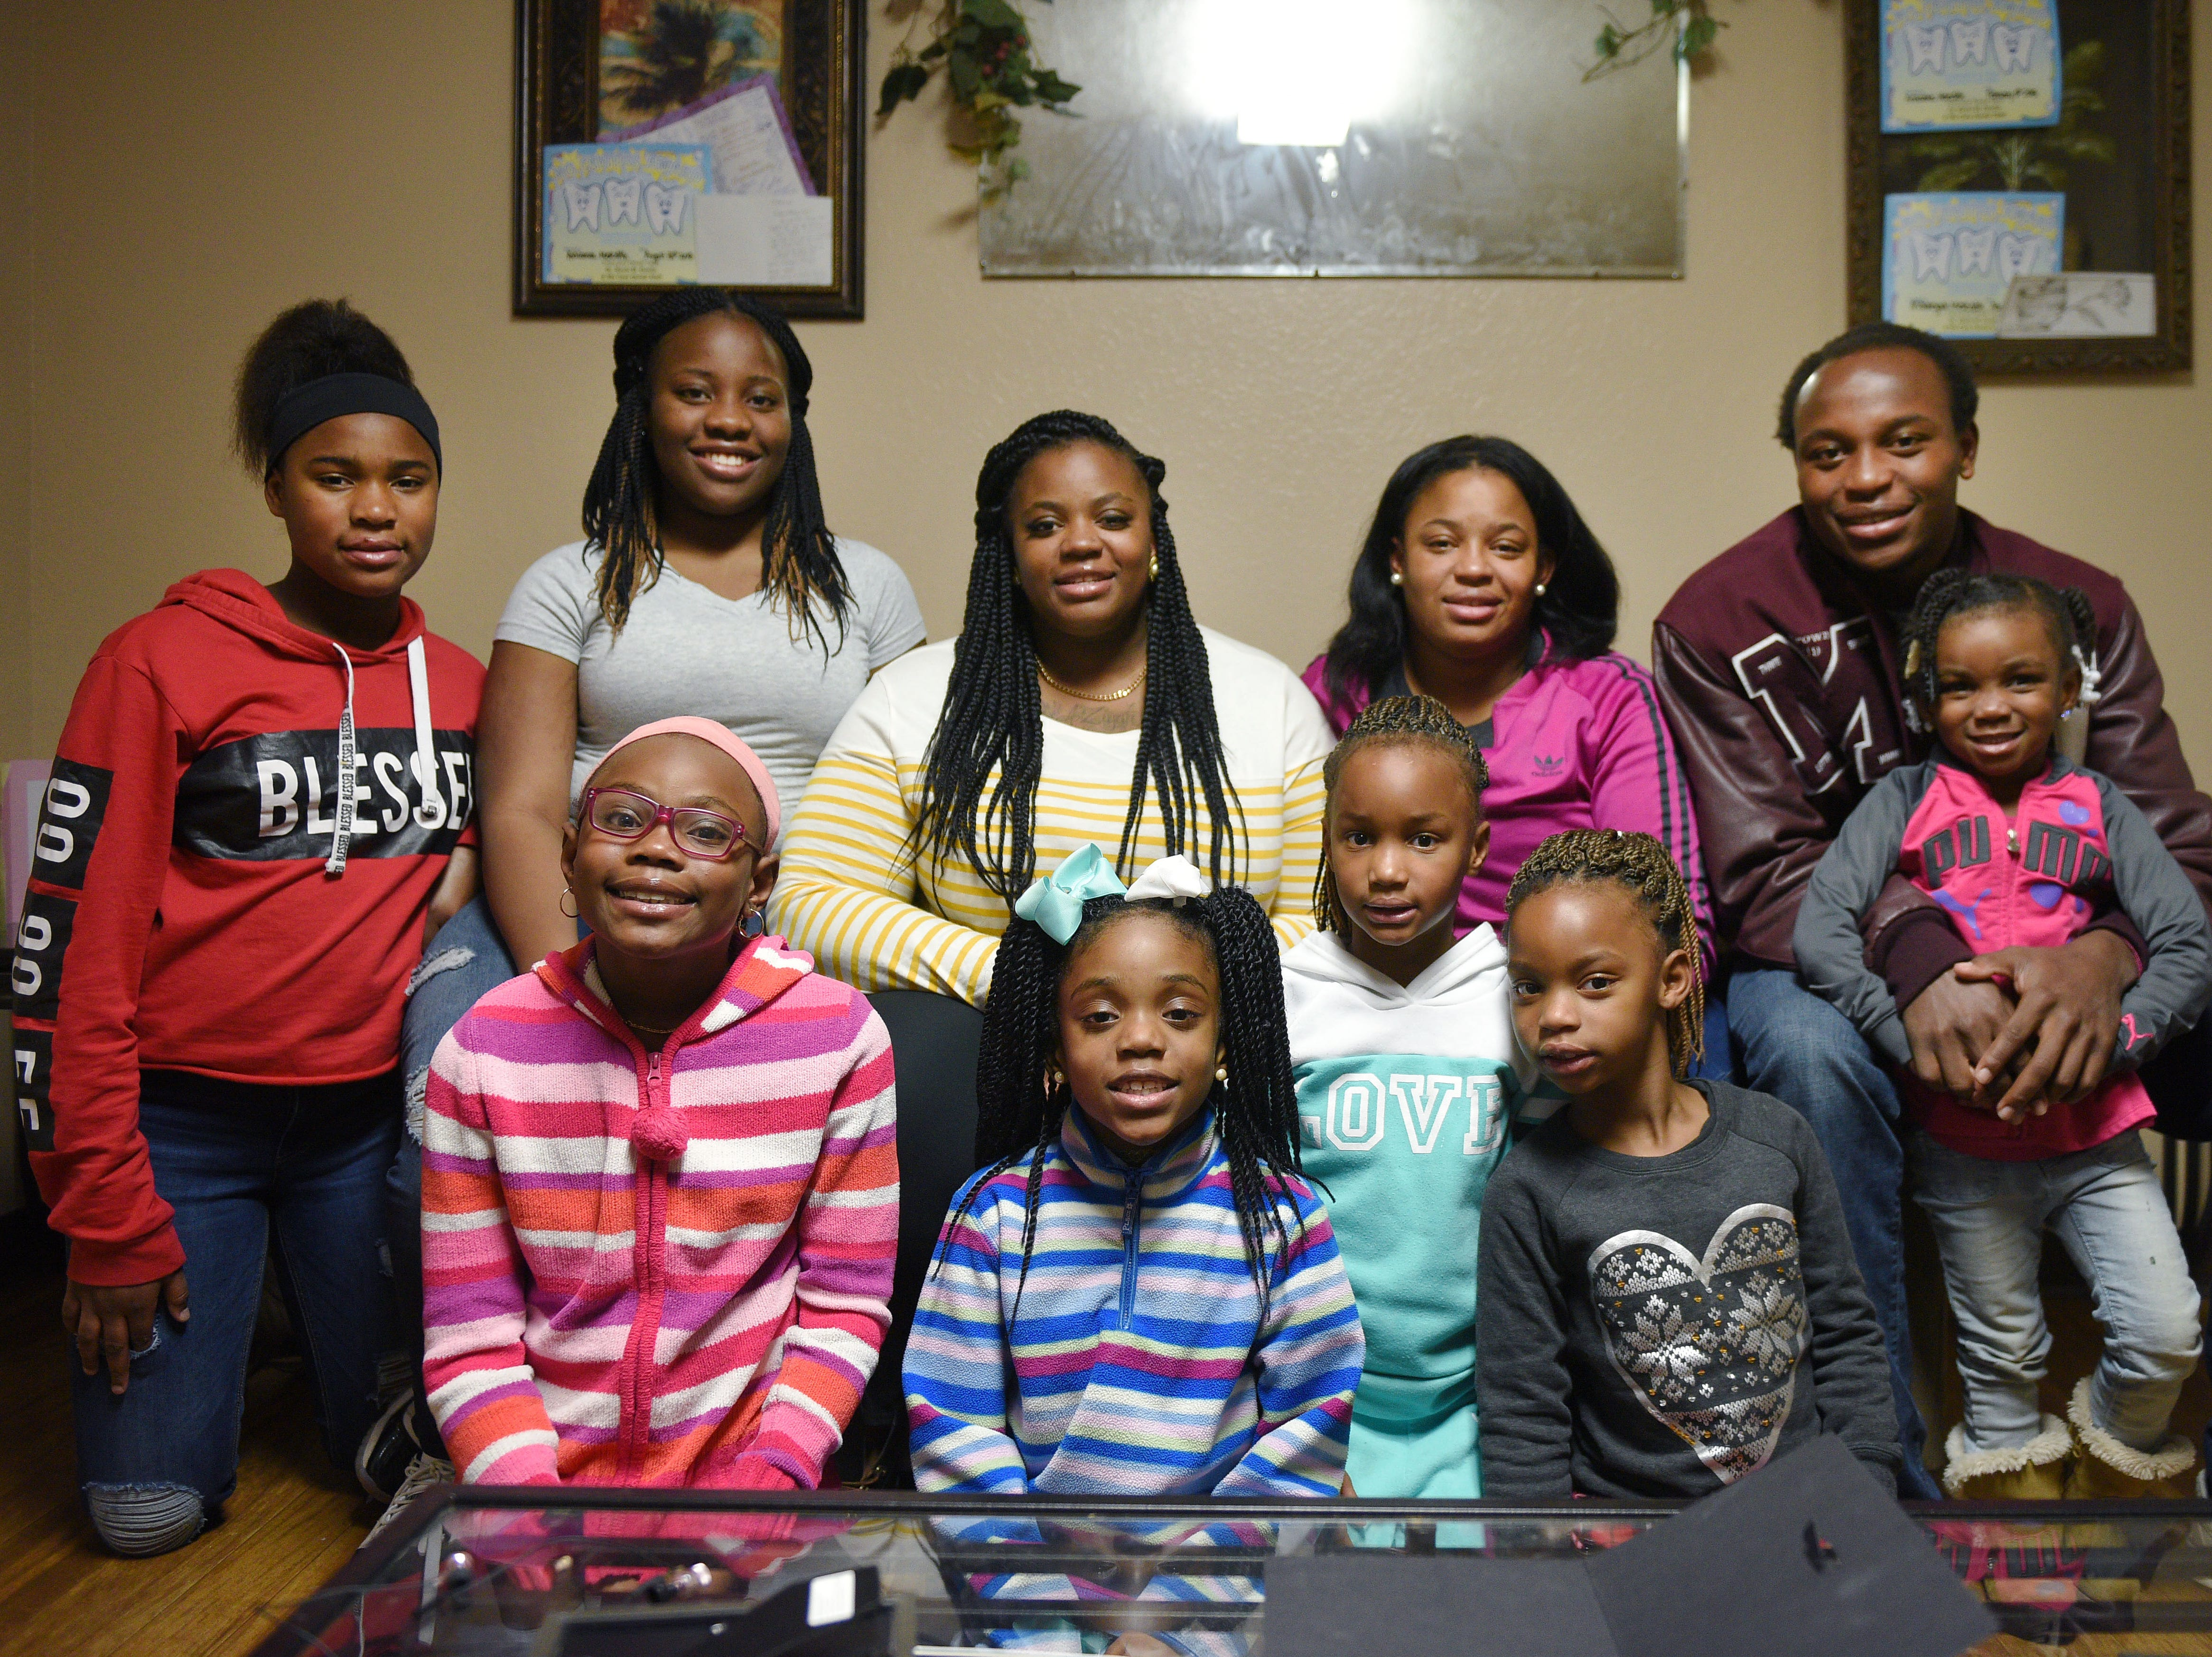 A'Meria Meredith, top row from left, Ka'Sandra Cauley, TanChicca Meredith, Iesha Meredith, Doyle Brown, Ava Scott Brown, bottom row from right, A'Zaireyah Meredith, ARianna Meredith, Aubrey Meredith, and A'Ziyah Meredith pose for a photo with Doyle Brown Thursday, Jan. 9, in Madison.